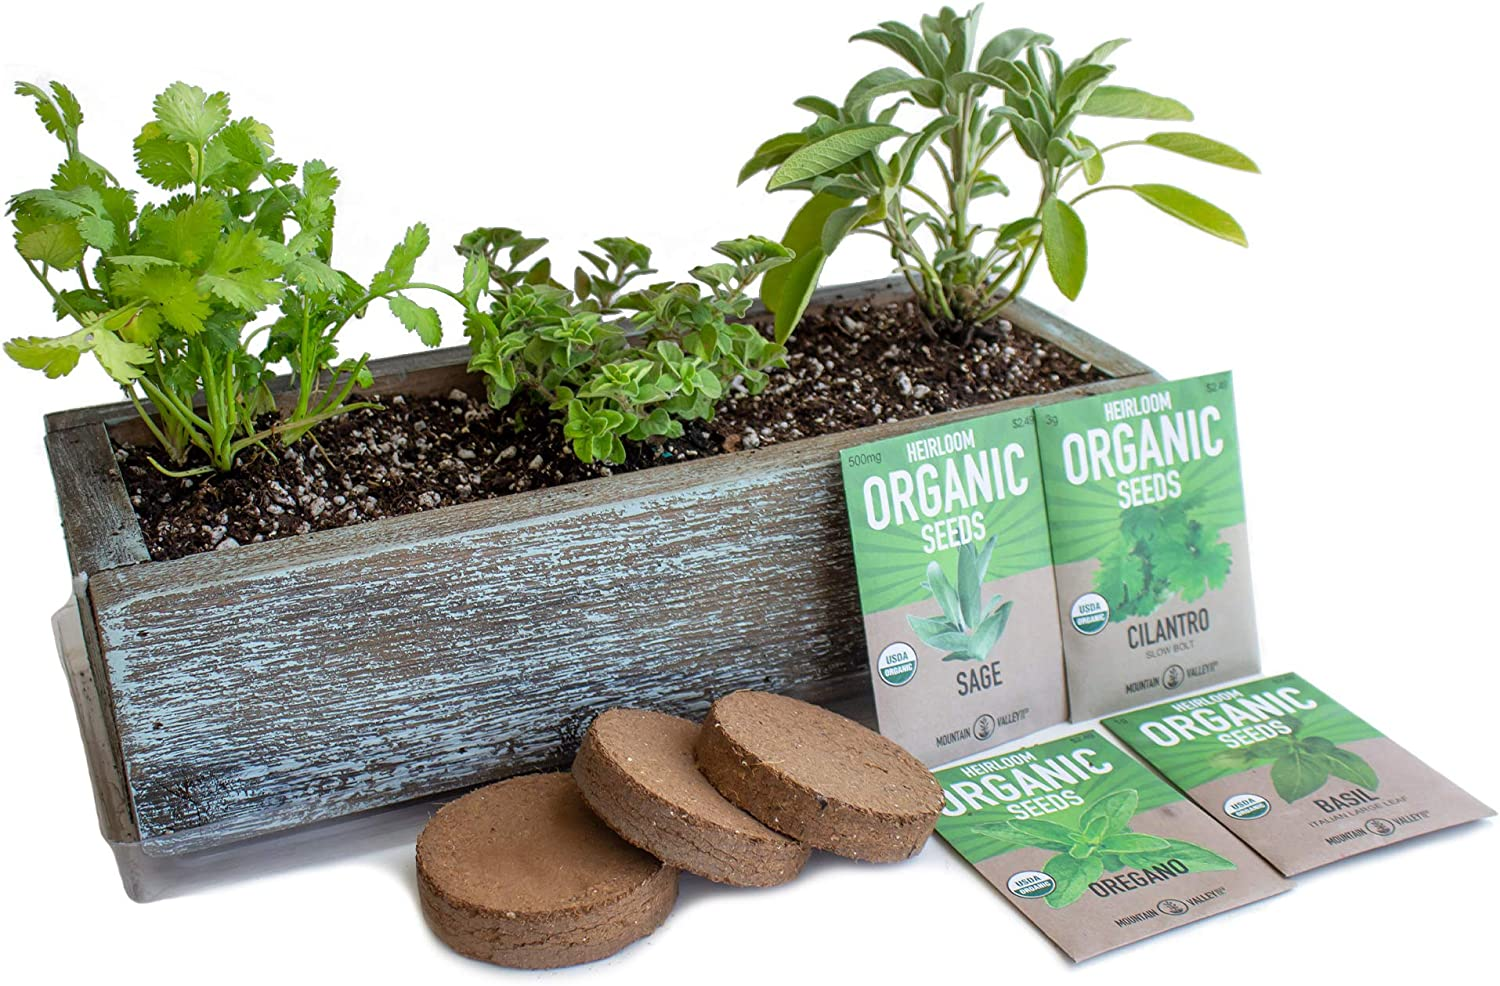 Culinary Indoor Herb Garden Kit with Reclaimed Barnwood Style Planter - Aged Brown - Grow Cooking Herbs - Non-GMO, Organic Seeds: Basil, Cilantro, Oregano & Sage - Windowsill Herb Gardening